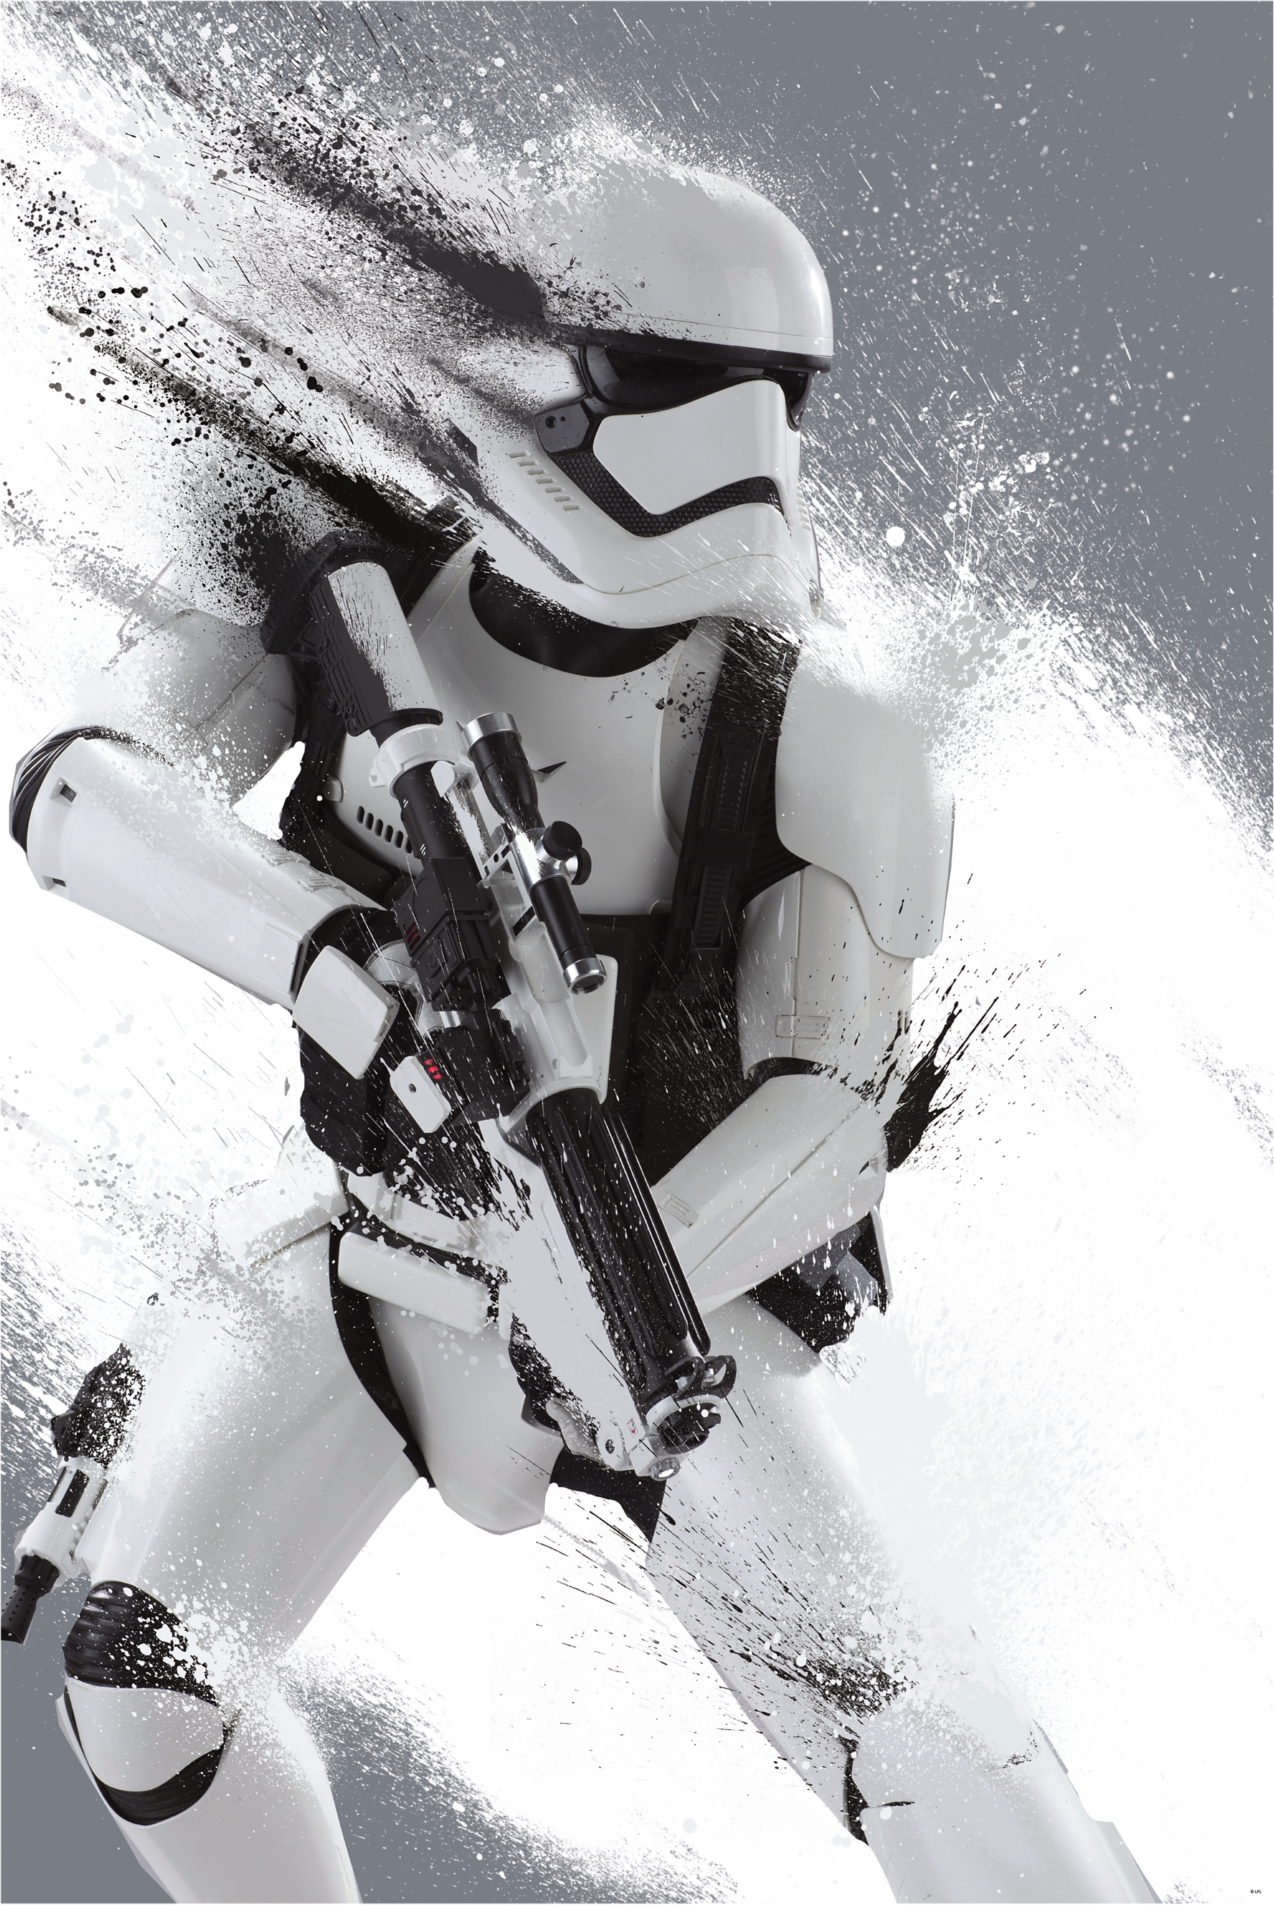 Star Wars The Force Awakens New Promotional